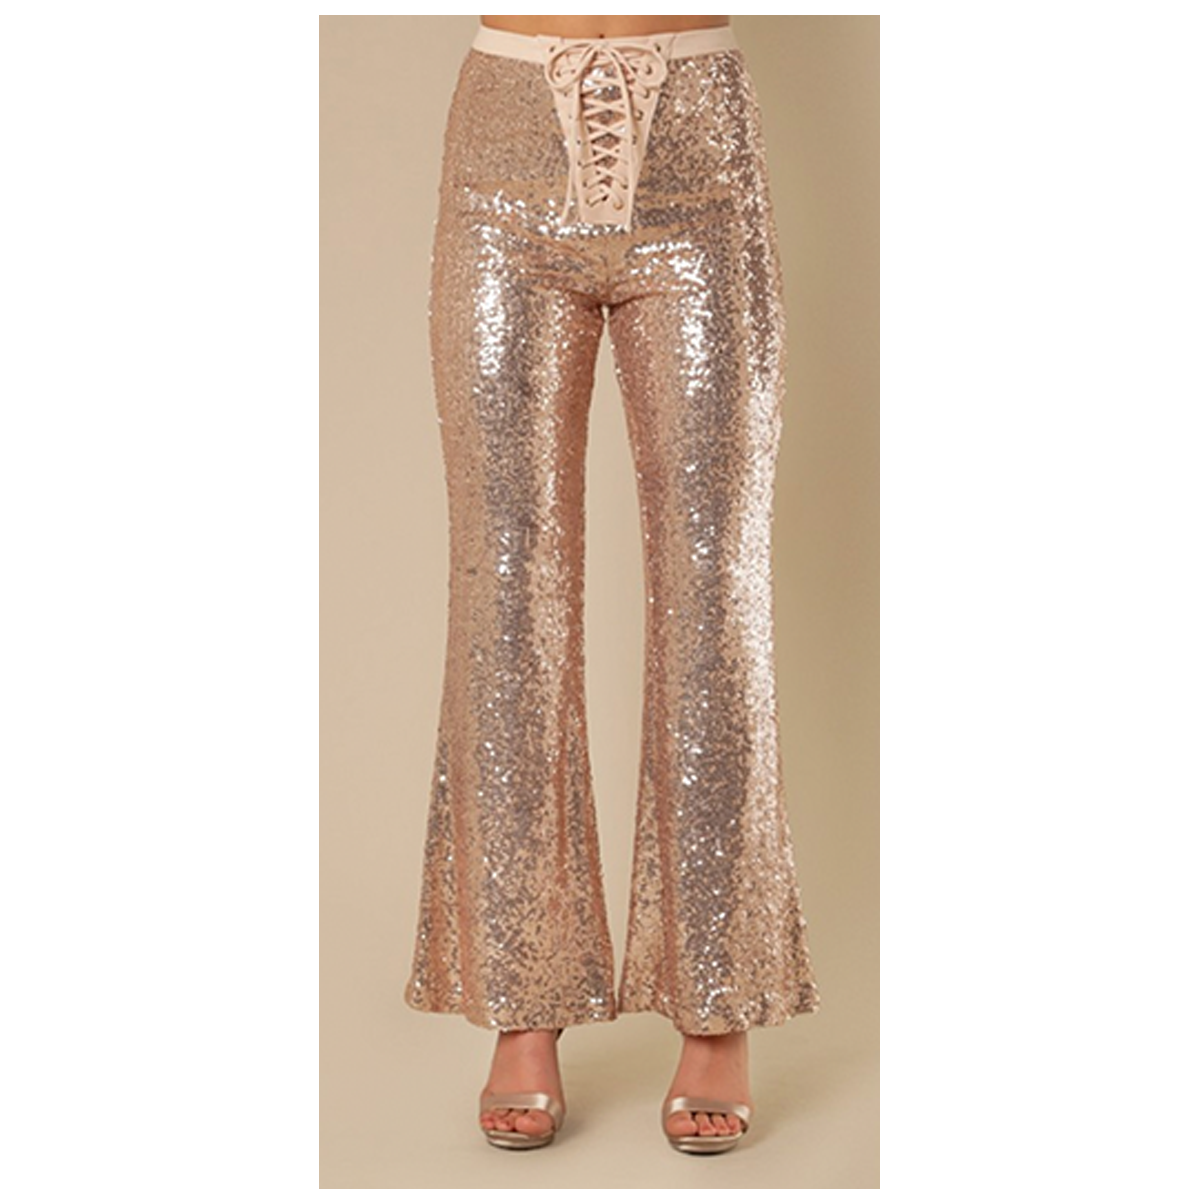 Rose Gold Lace-Up Sequin Bell Bottom Yoga Pants